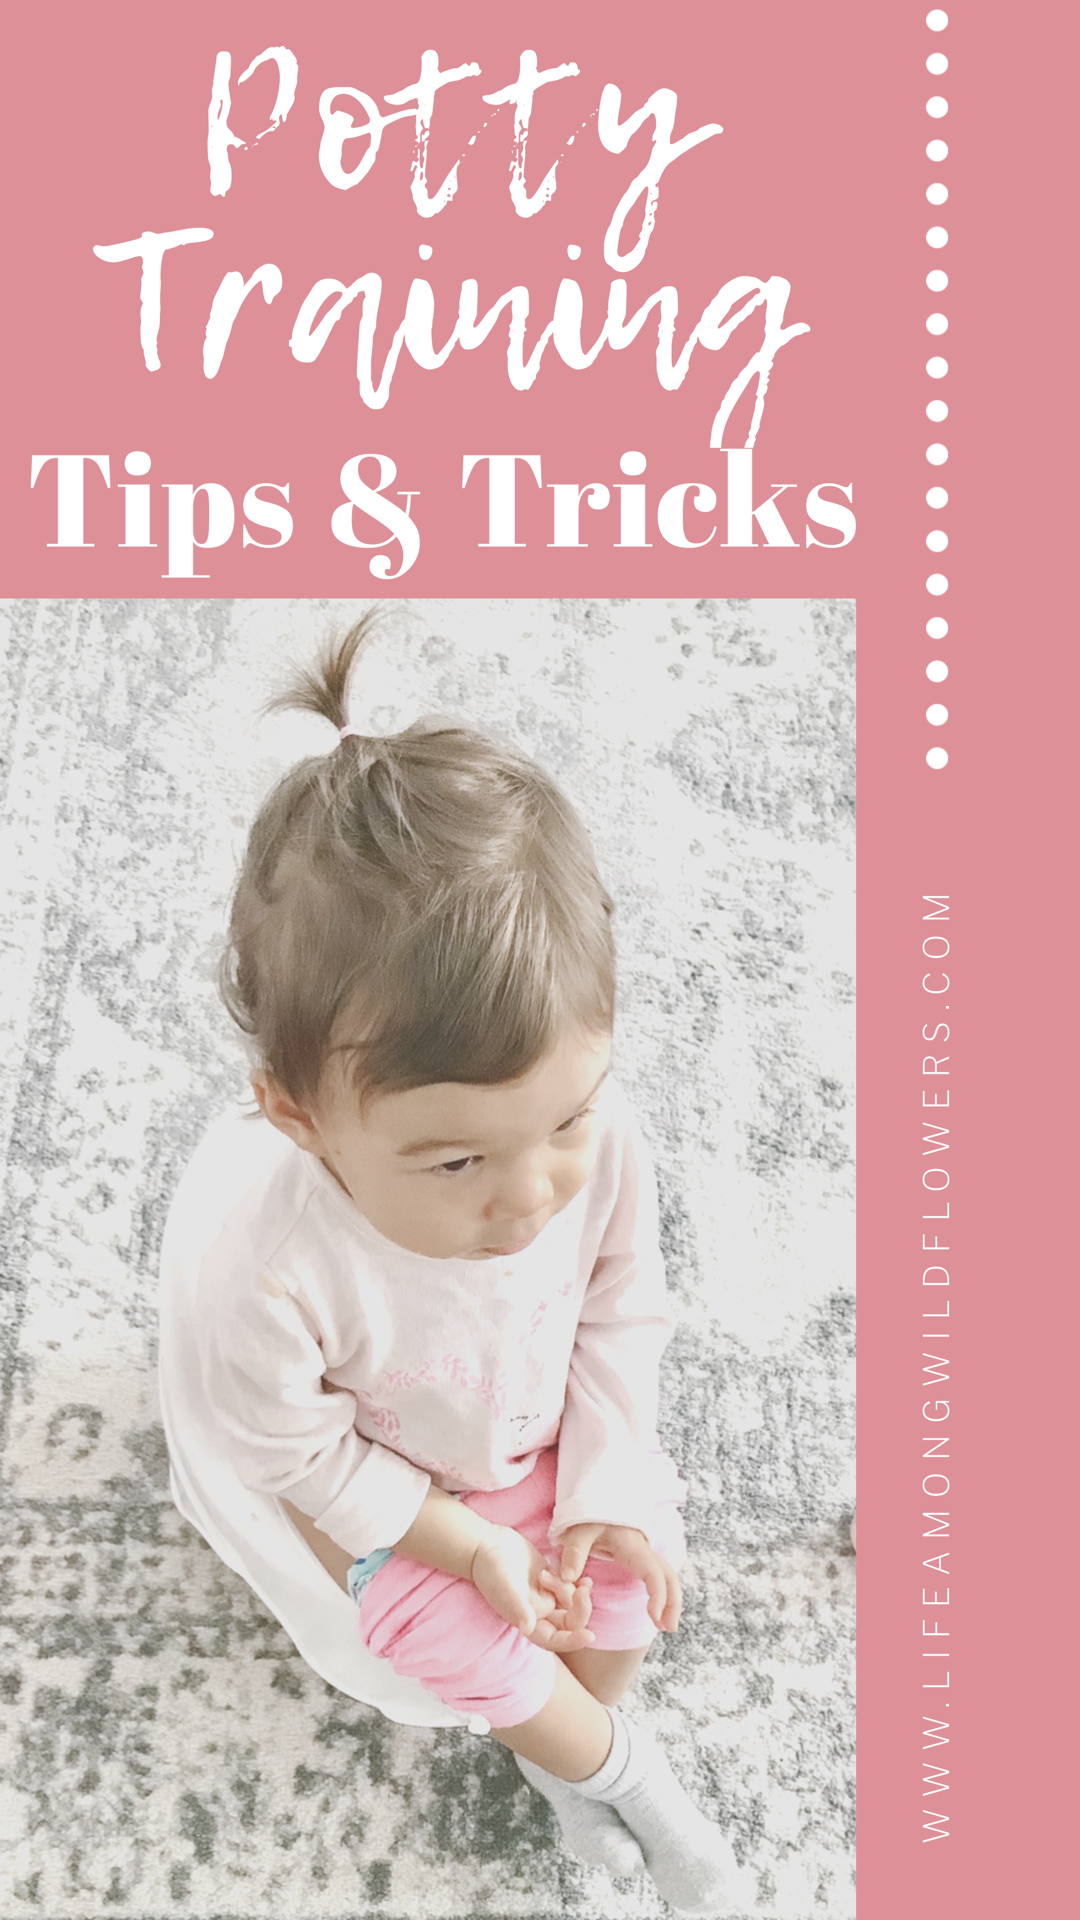 Are you wondering when the best time to start potty training is? Or what the fastest way to potty train is? Check out these potty training tips and tricks, and how we potty trained our toddler in just one week!